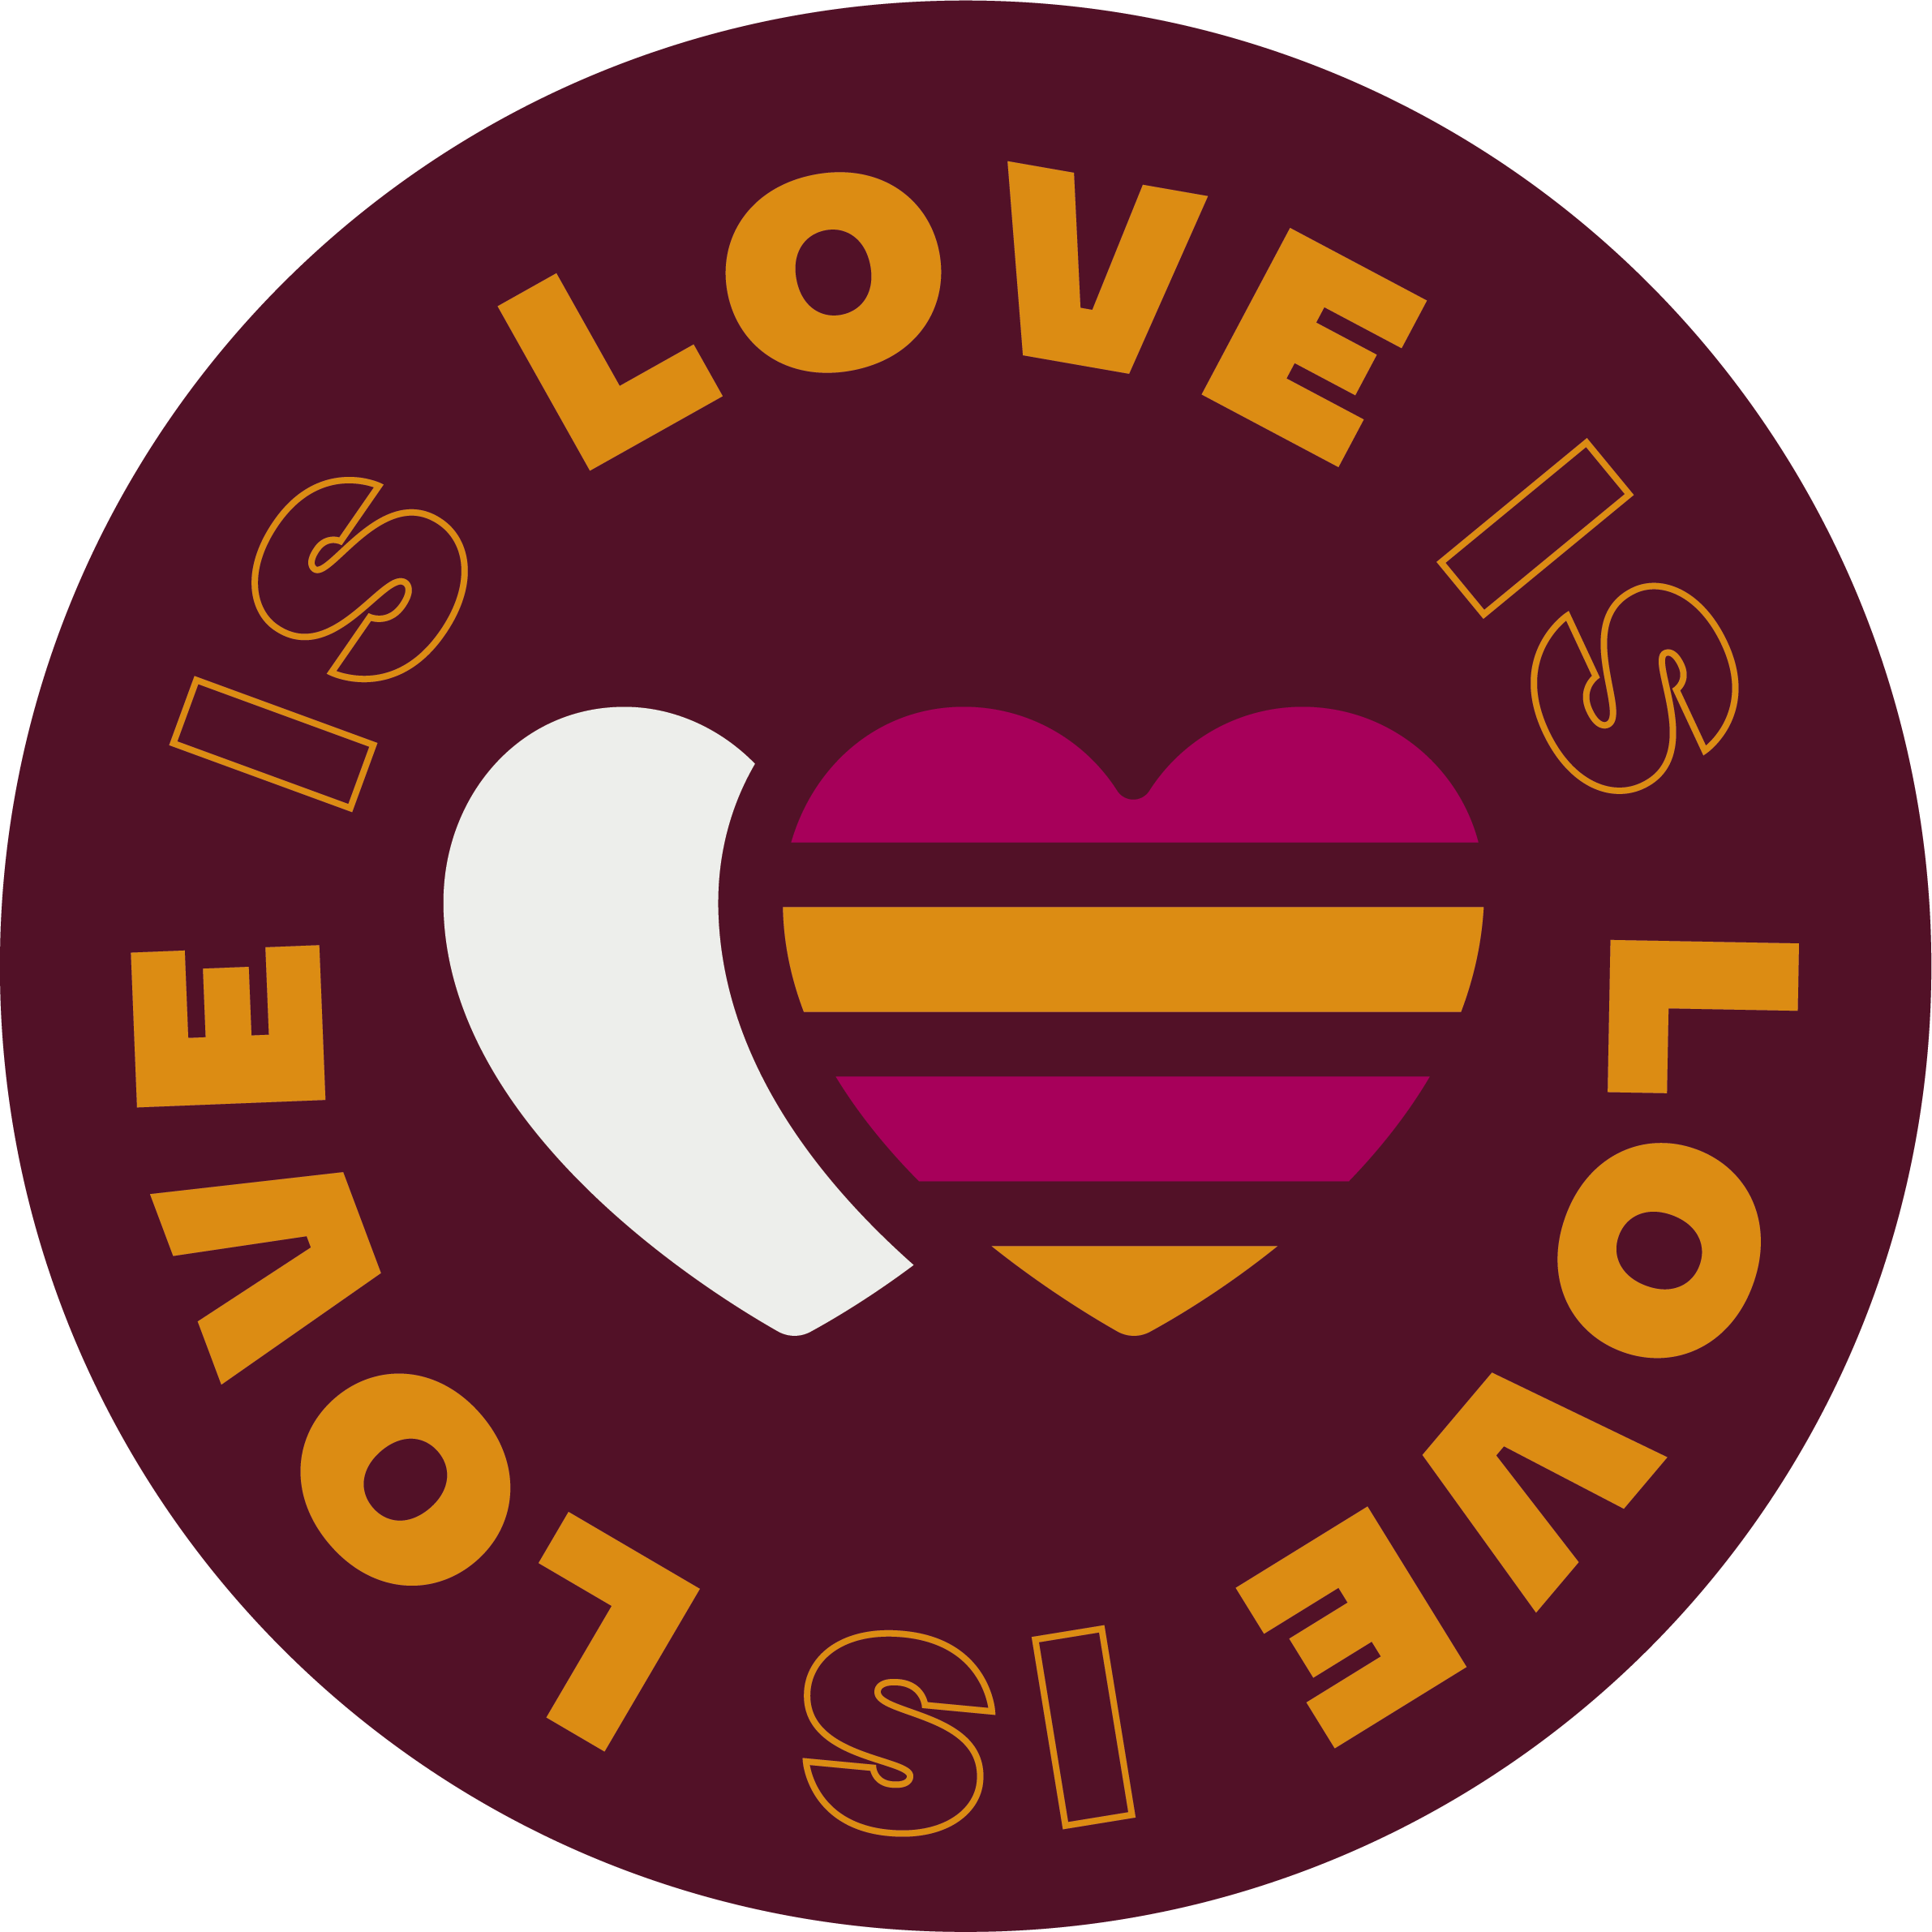 """Round sticker with an icon of two hearts, saying """"Love is Love""""."""